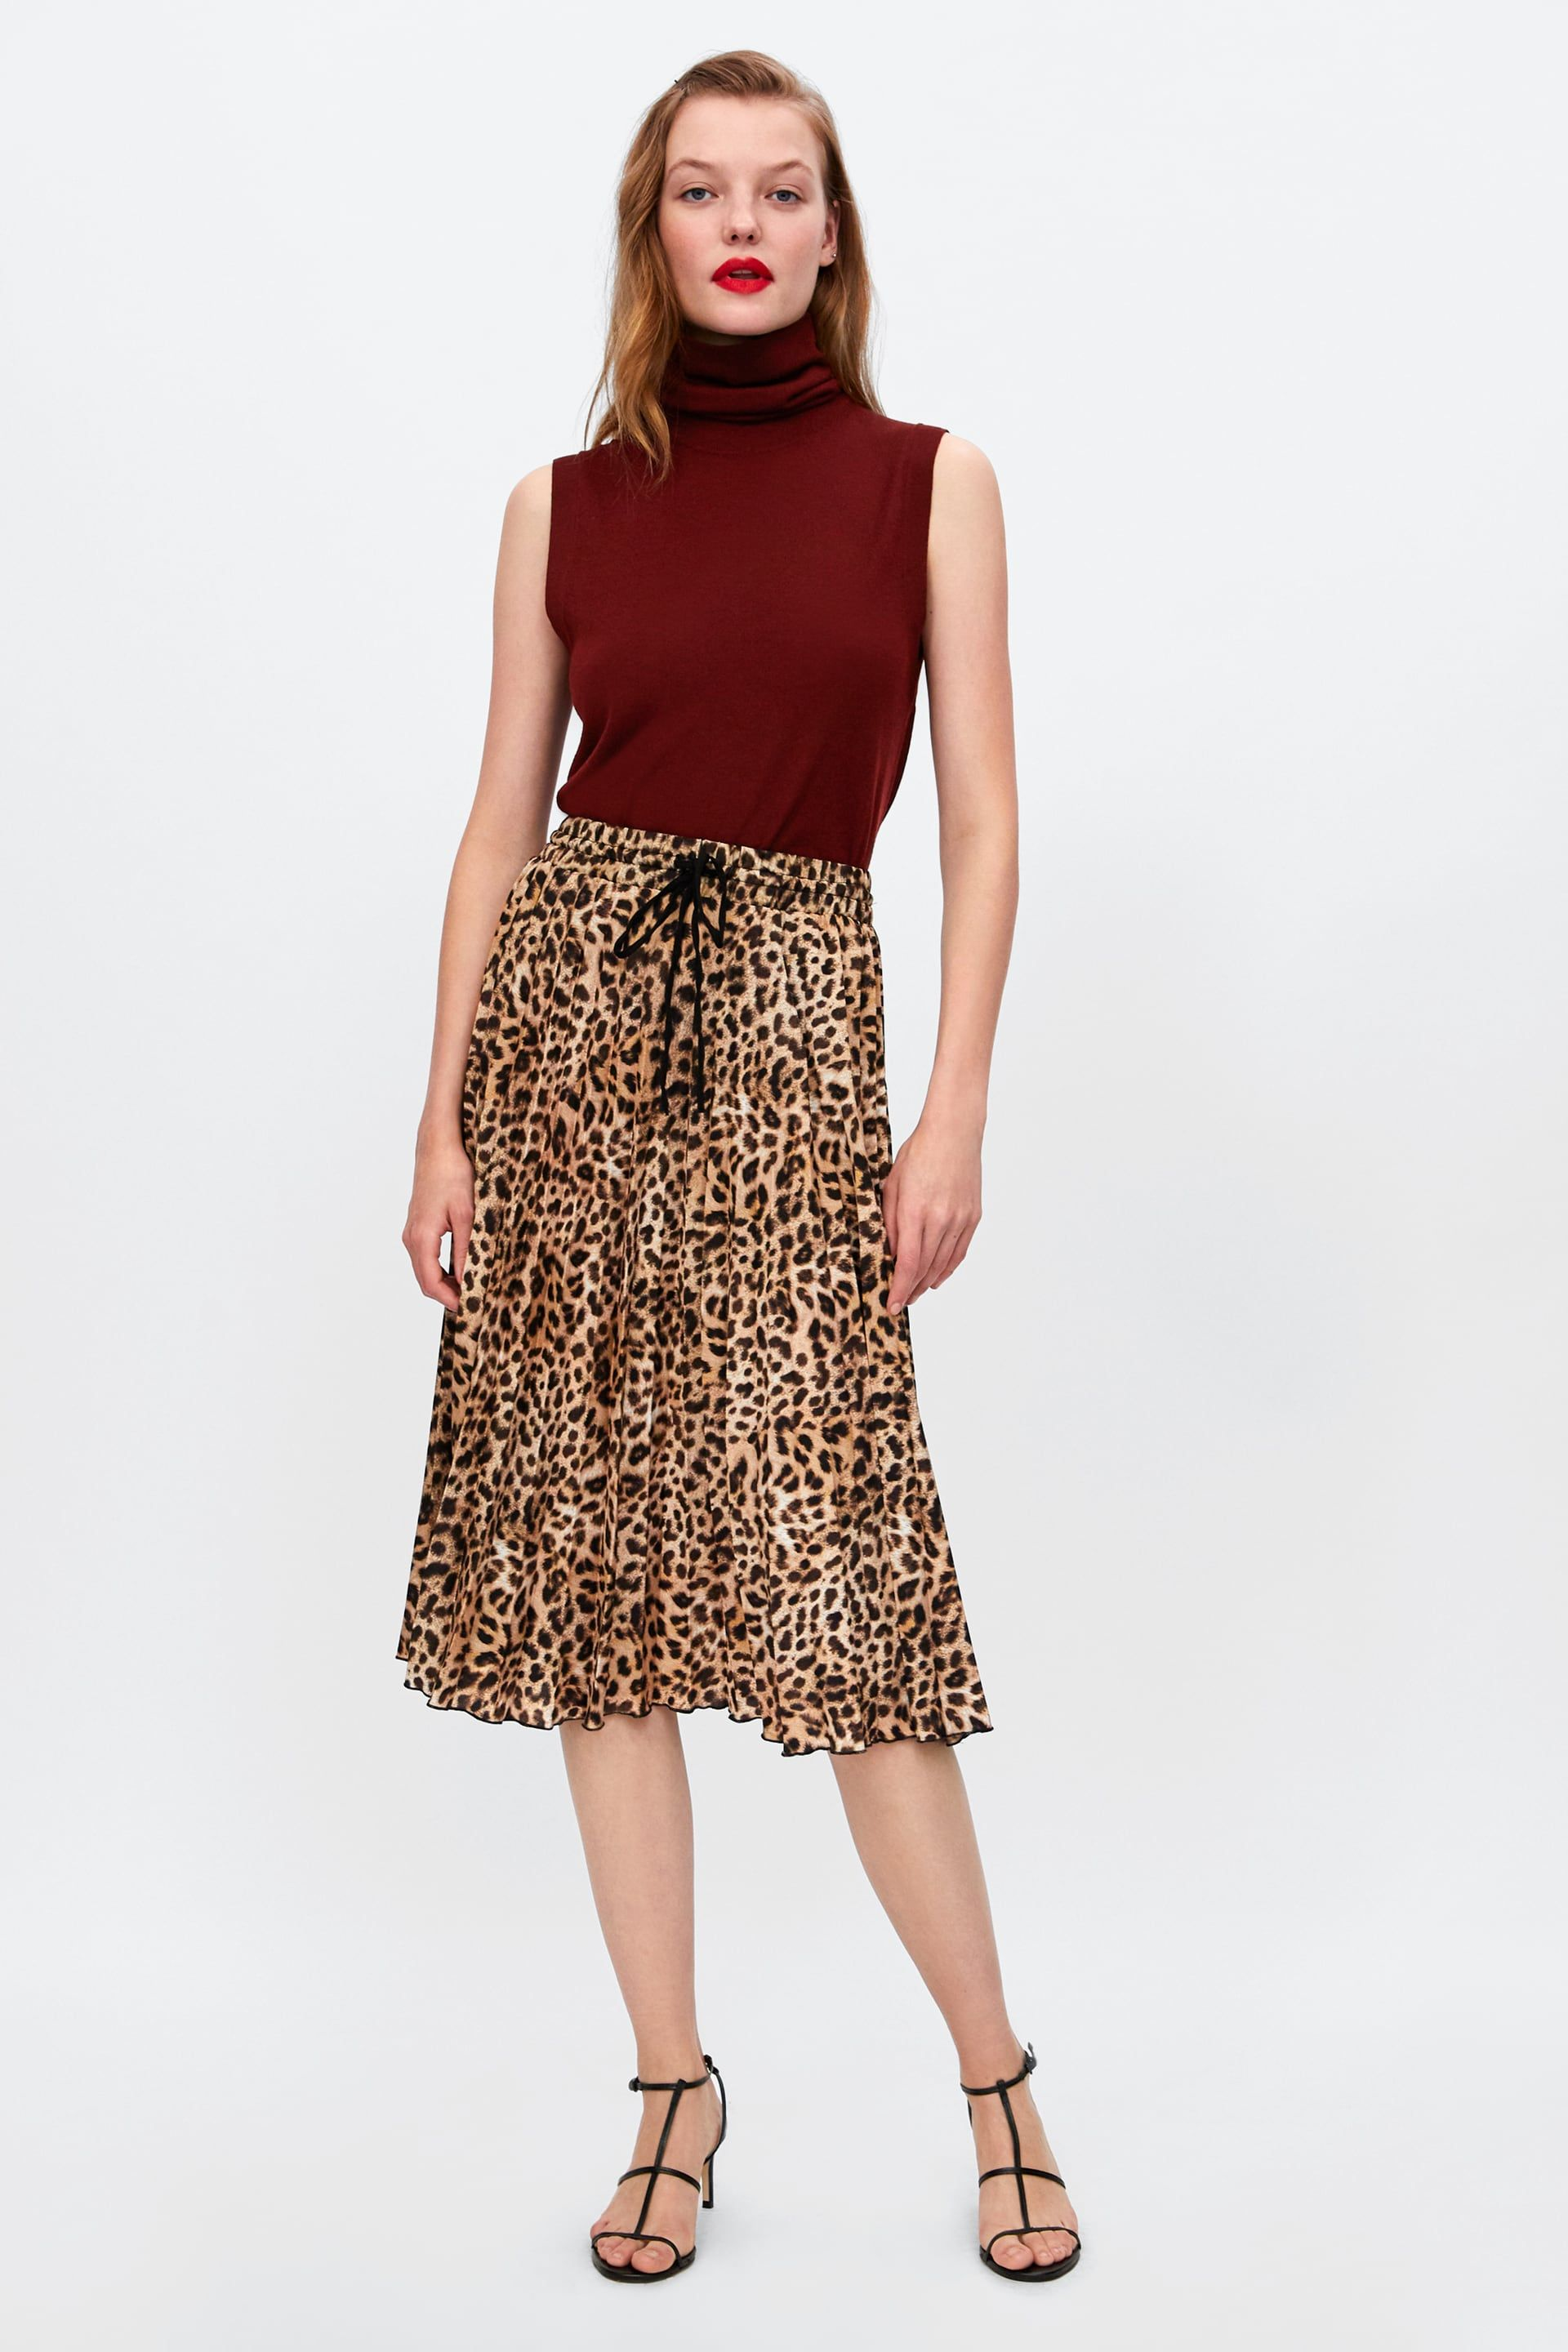 34e3cabab FALDA ESTAMPADO ANIMAL in 2019 | JUMA by JUMA | Animal print skirt ...